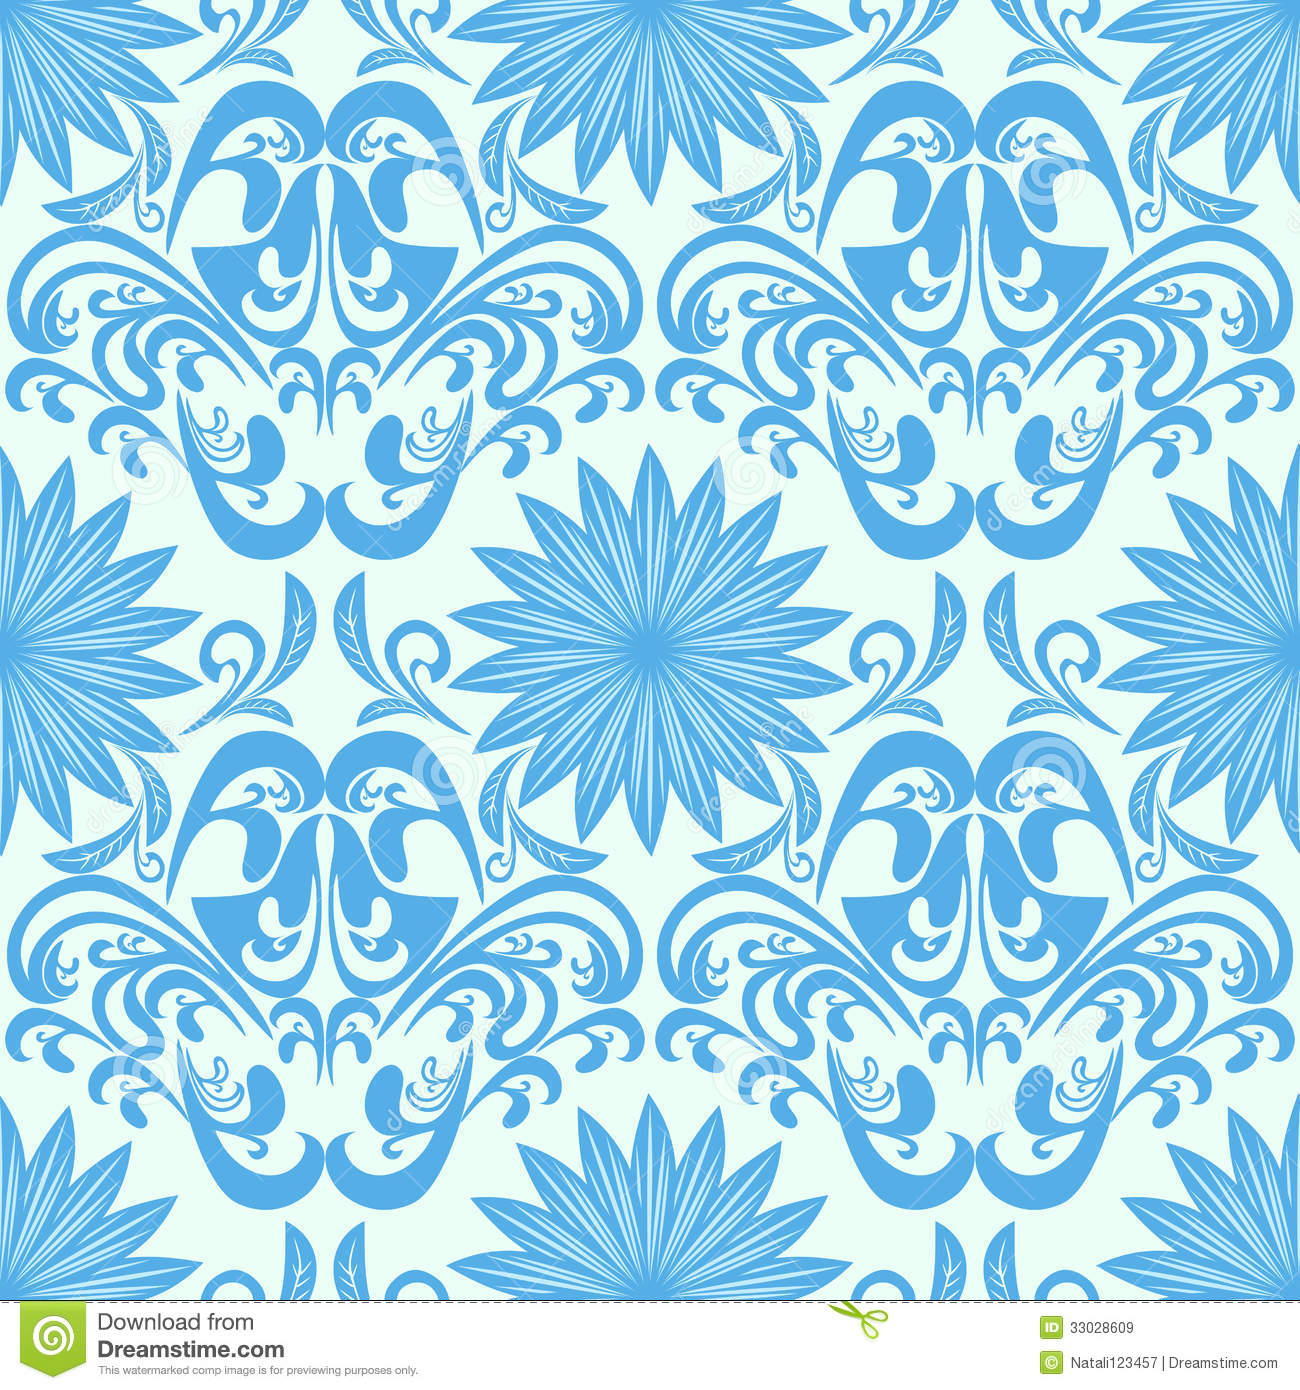 Blue Seamless Floral Damask Wallpaper Royalty Free Stock Images Image